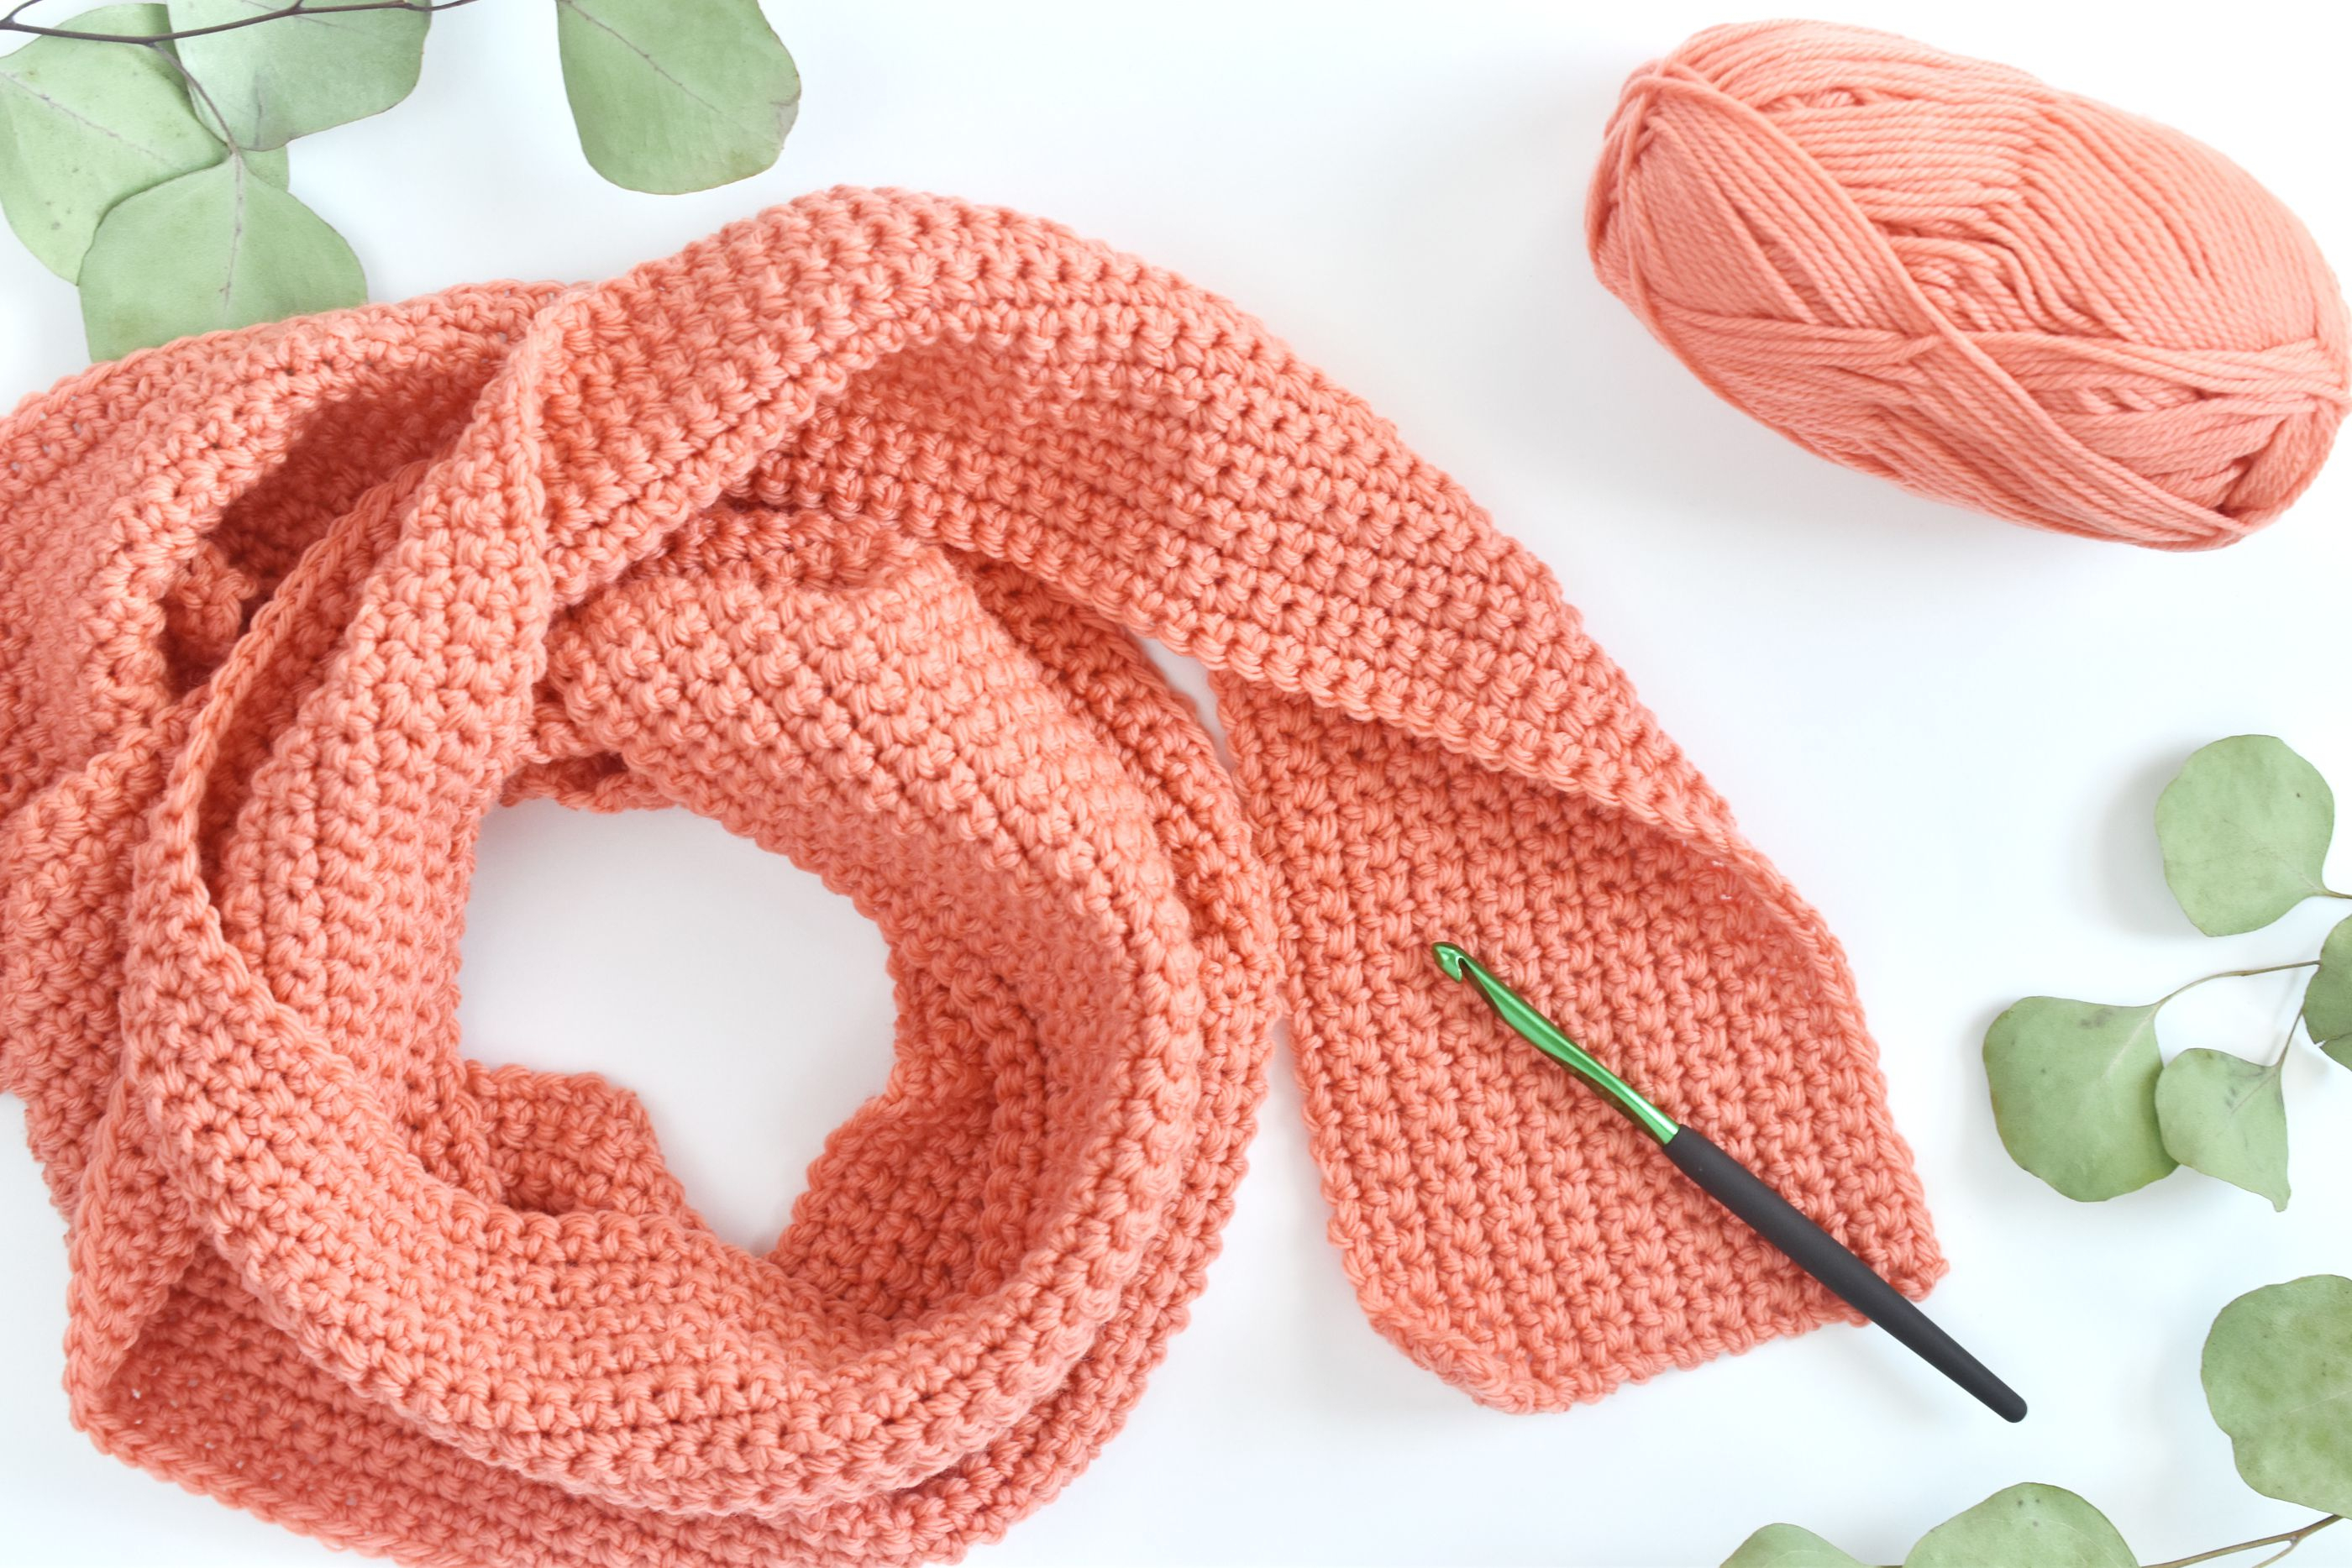 Simple Scarf Knitting Patterns For Beginners How To Crochet A Scarf For Beginners